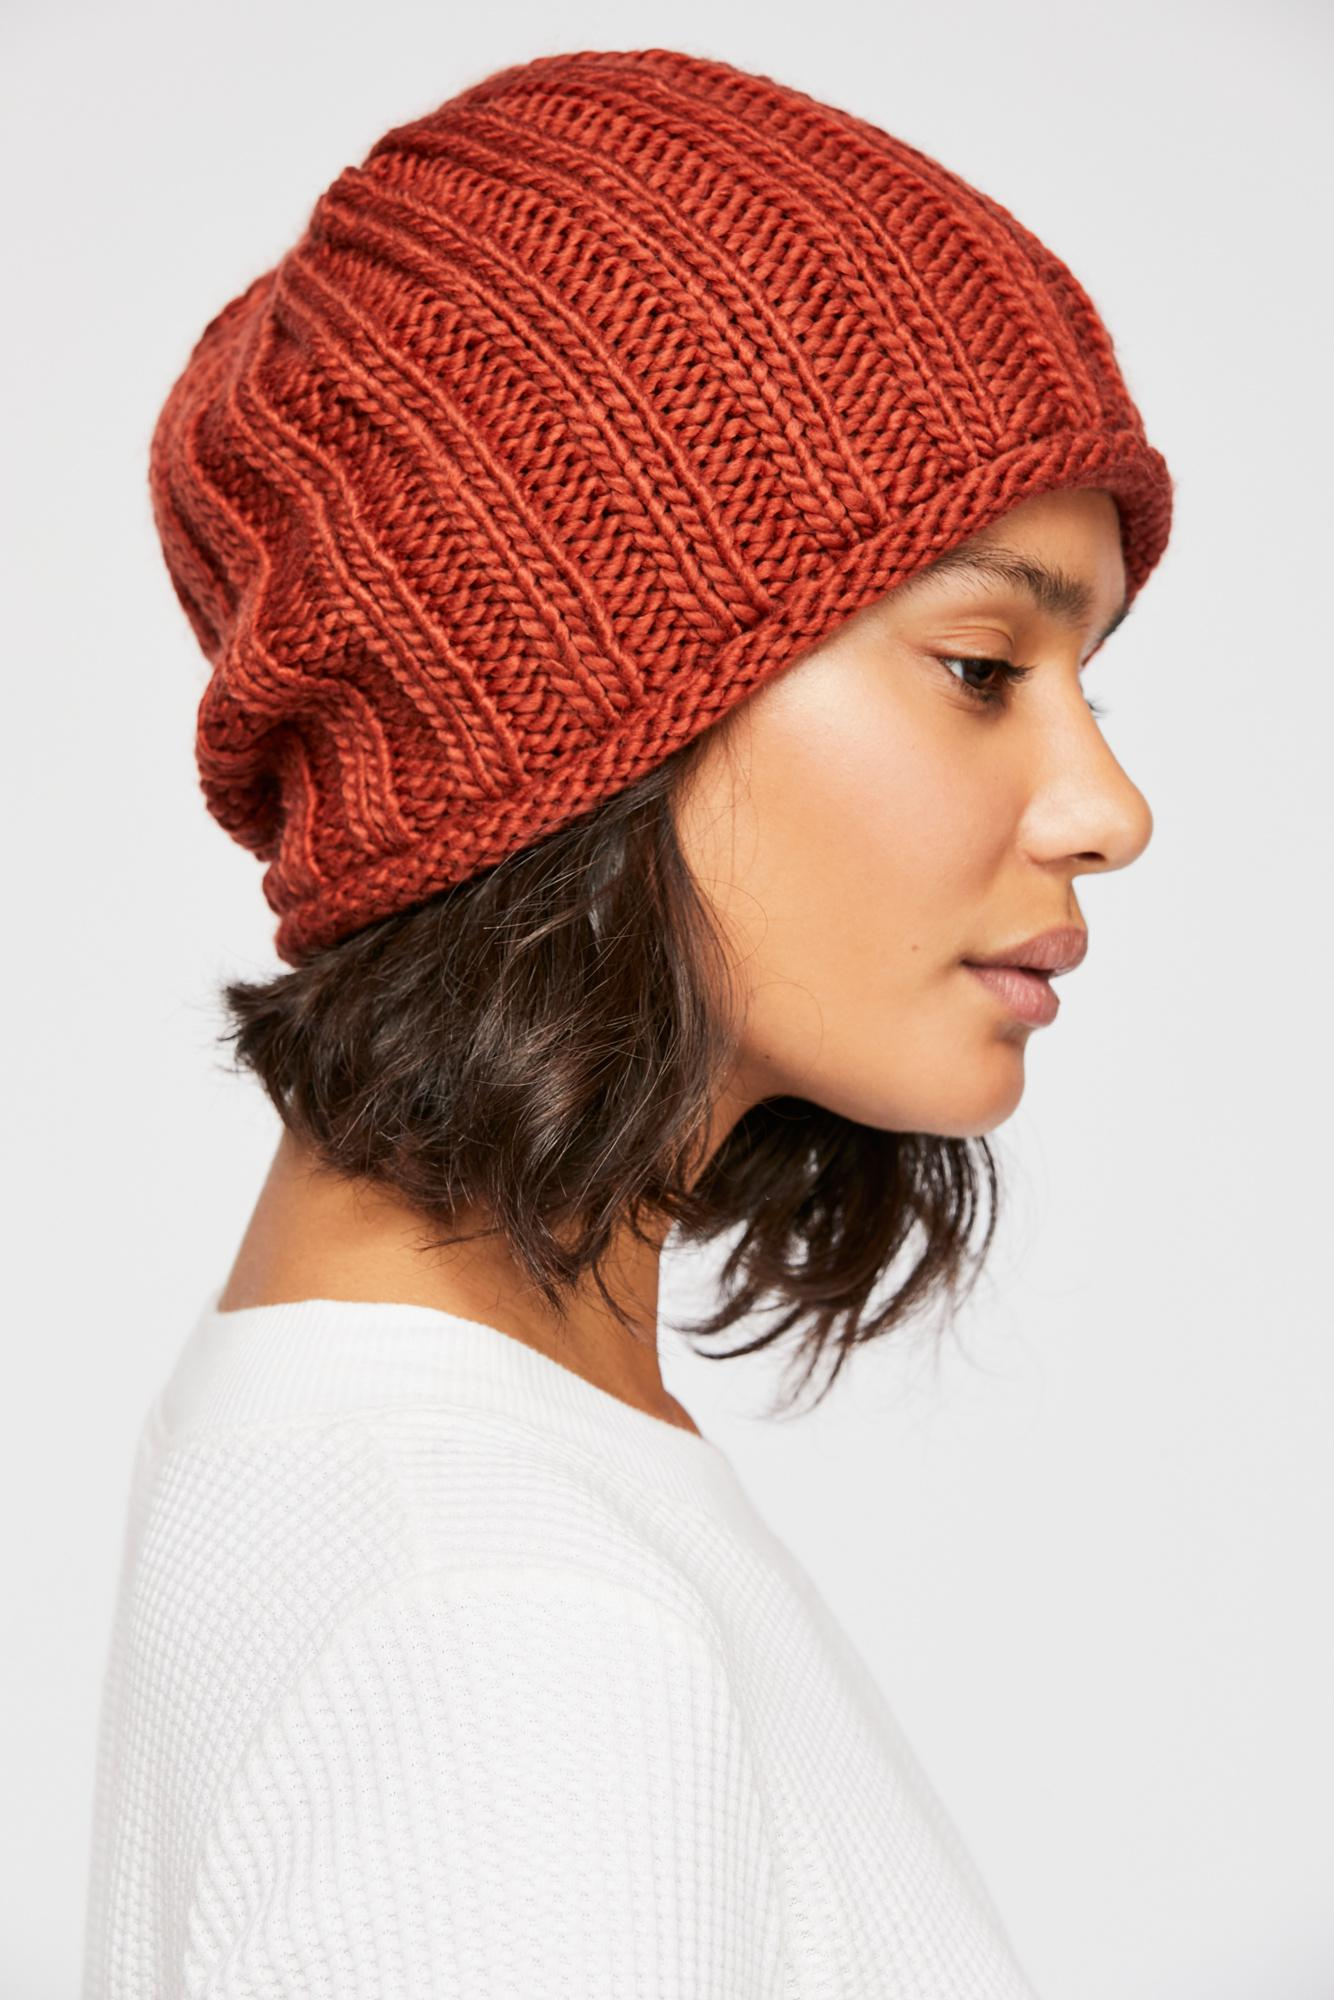 75ef3b530bb845 Free People Rory Rib Knit Beanie in Brown - Lyst